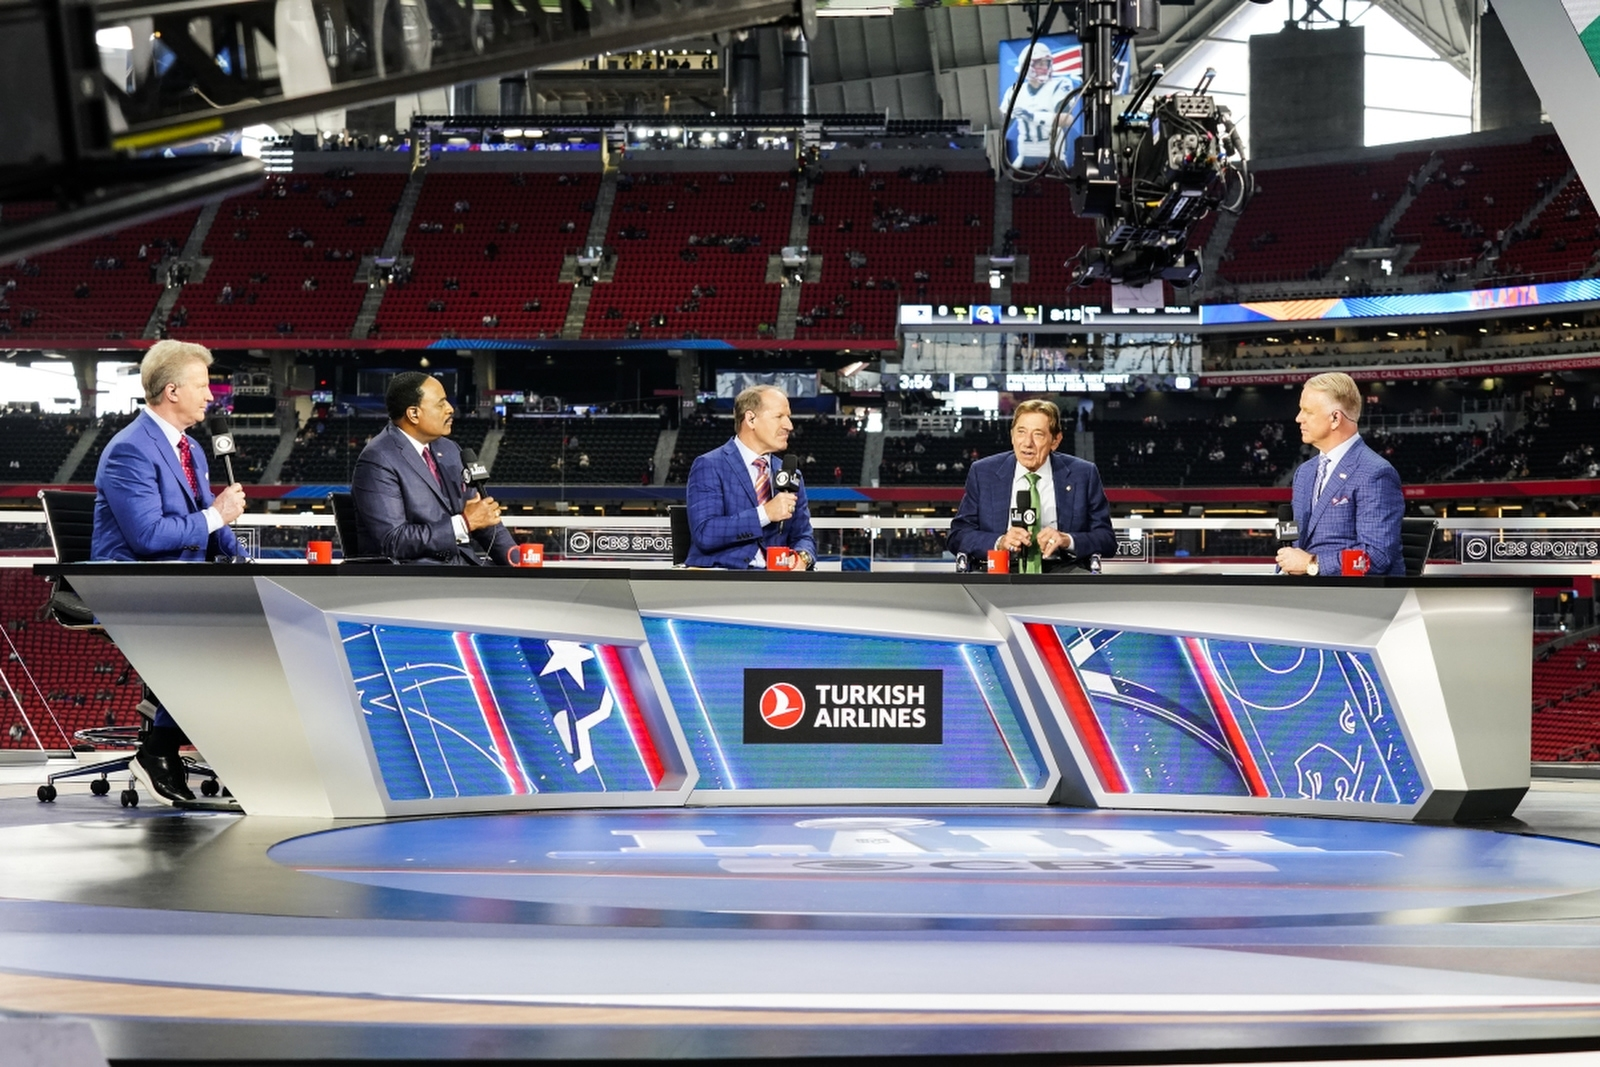 Cbs Super Bowl Liii Broadcast Set Design Gallery intended for Cbs Sports Super Bowl